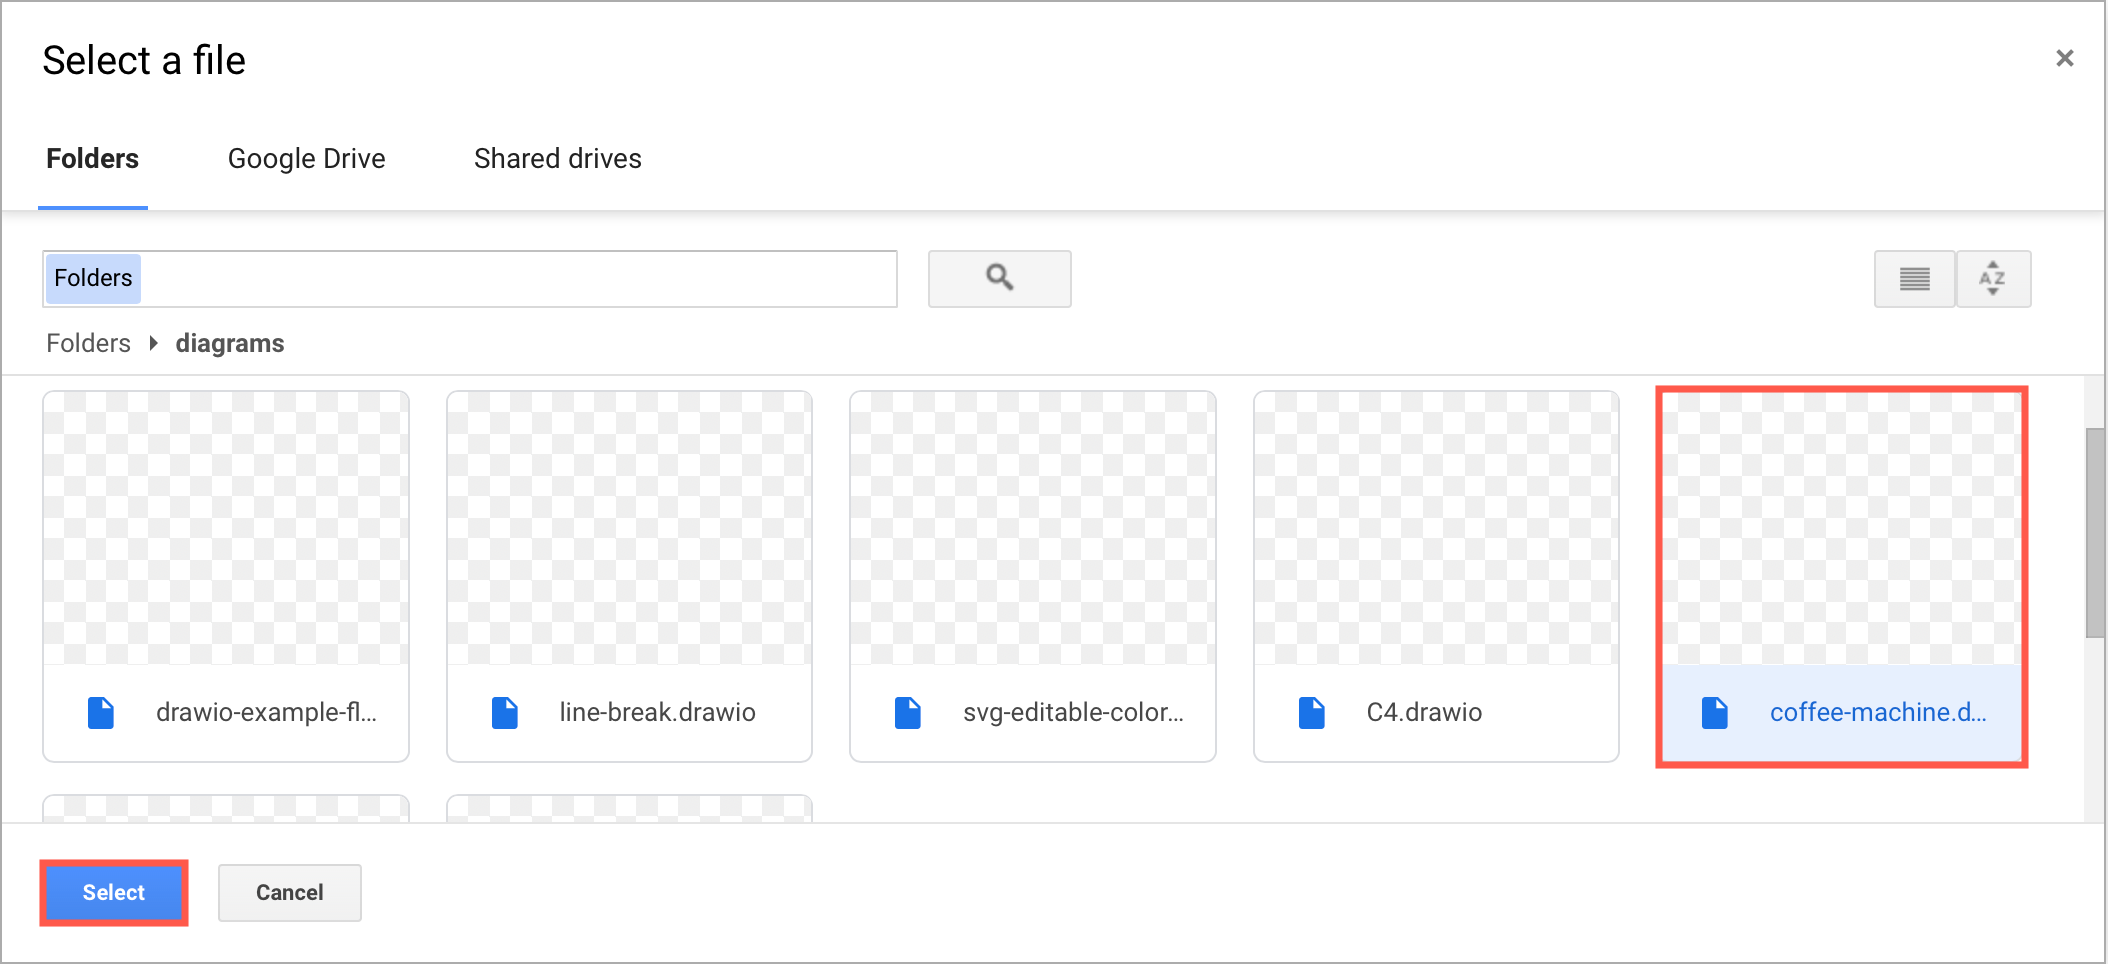 Select the draw.io diagram file in your Google Drive